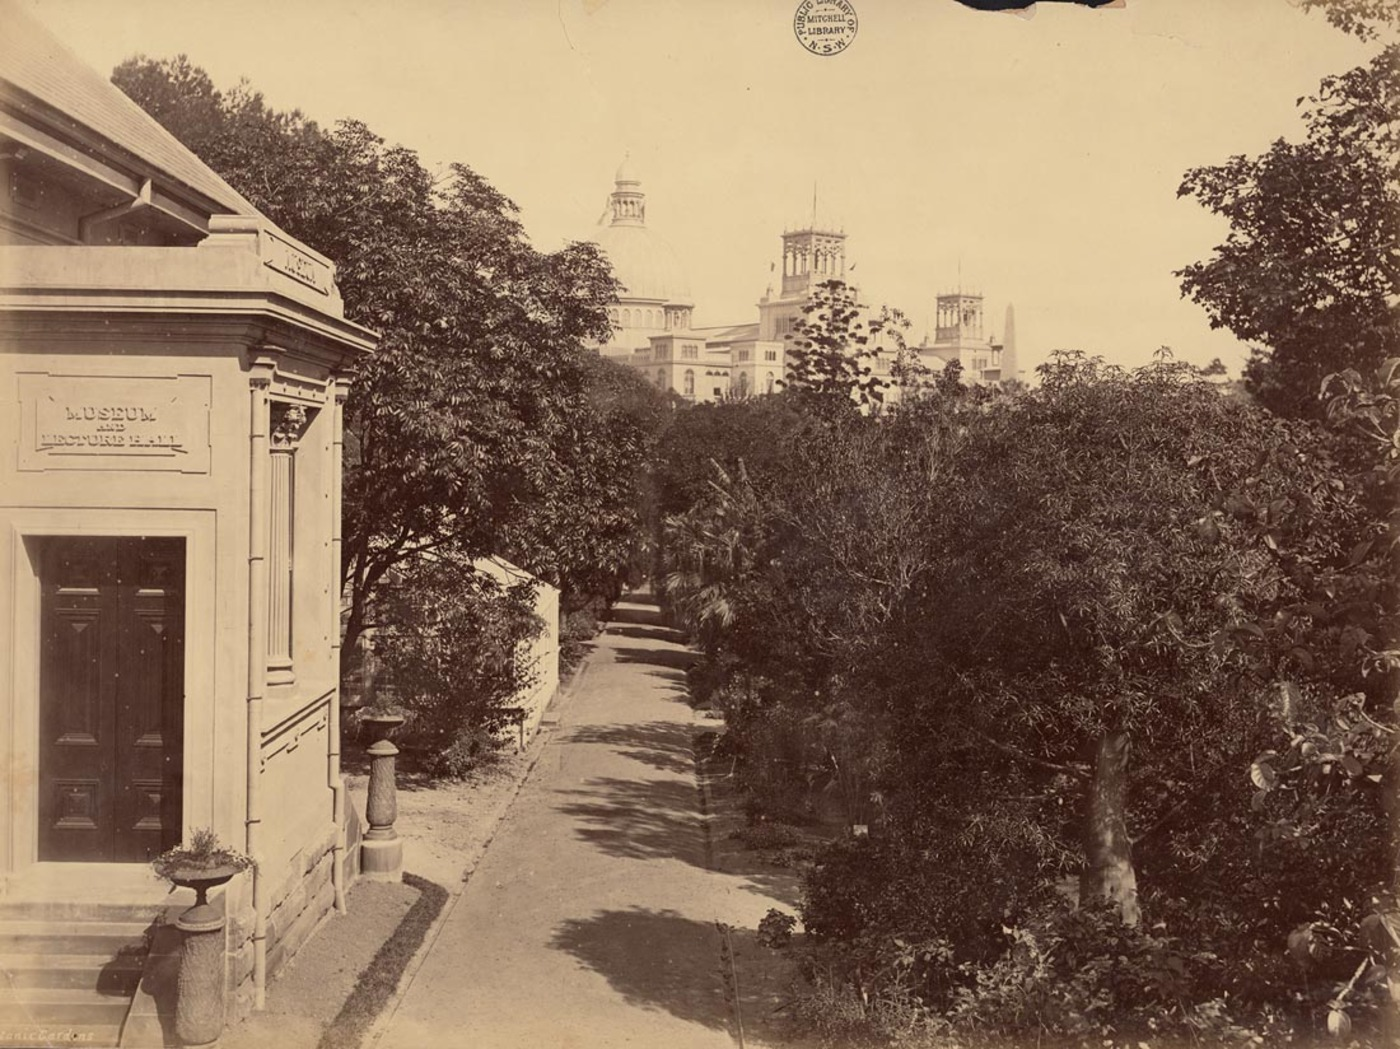 Botanic Gardens [Sydney / attributed to the New South Wales. Government Printing Office], 1879